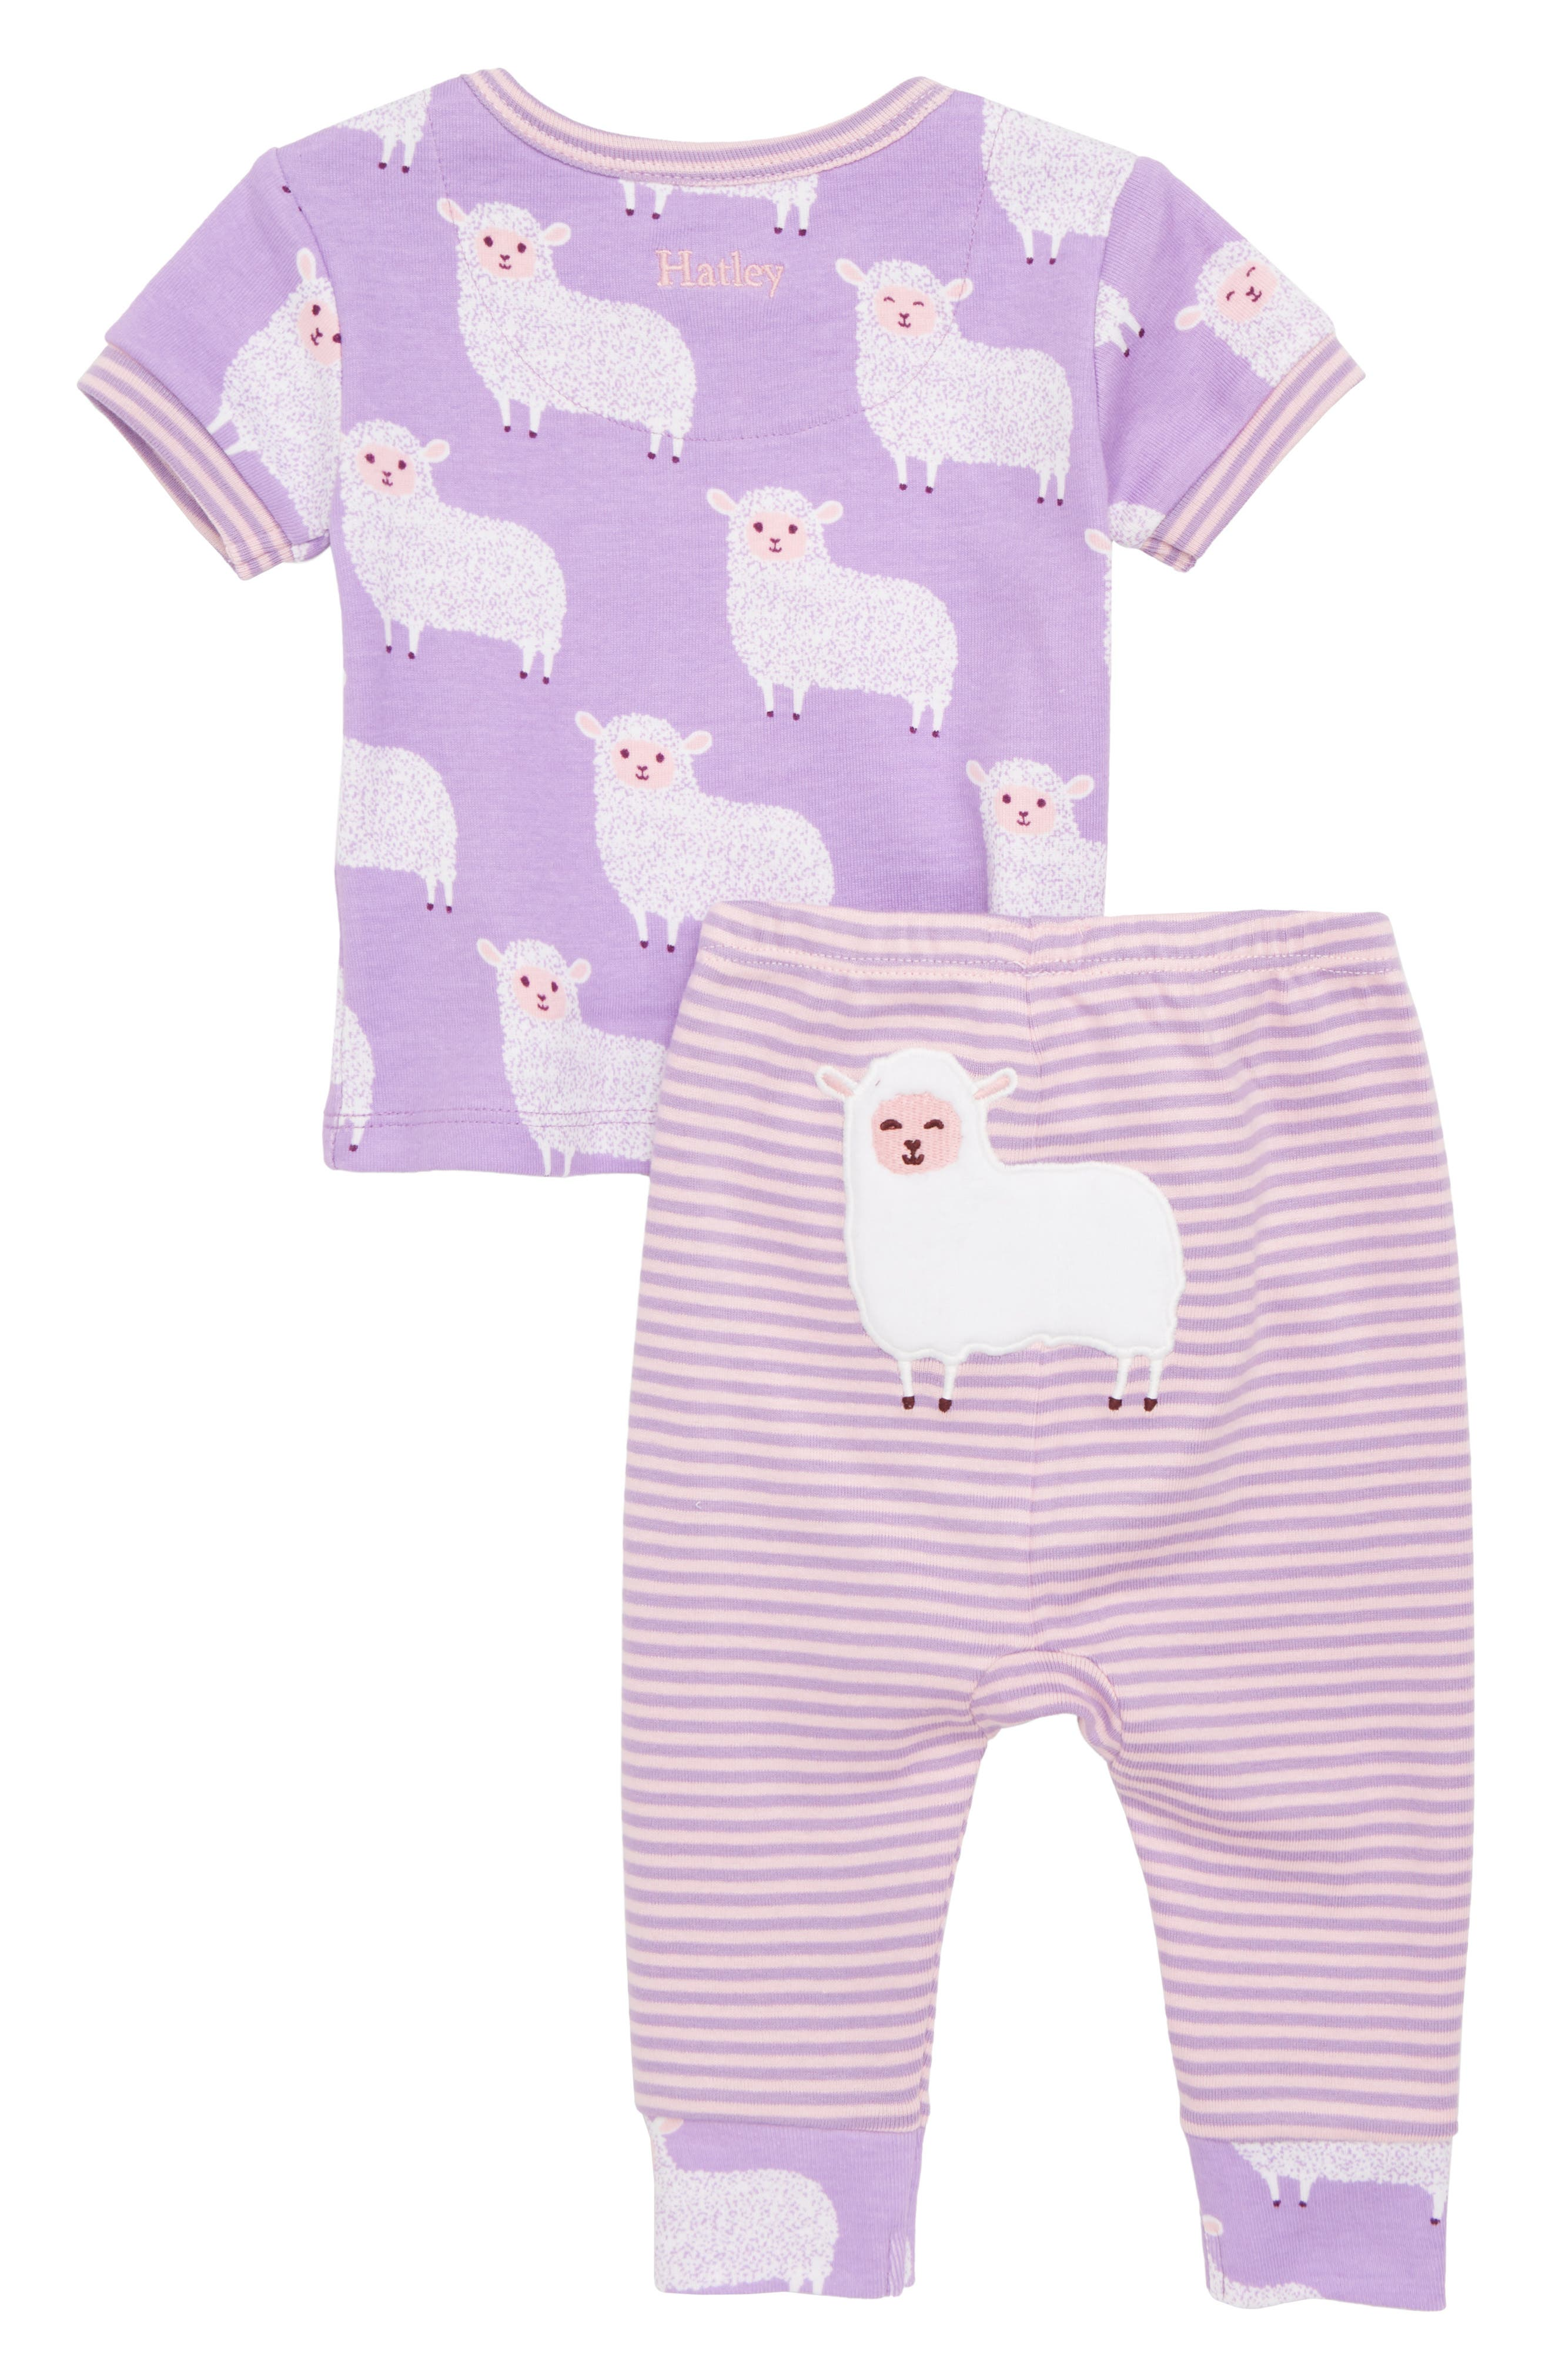 Counting Sheep Fitted Two-Piece Pajamas,                             Alternate thumbnail 2, color,                             500